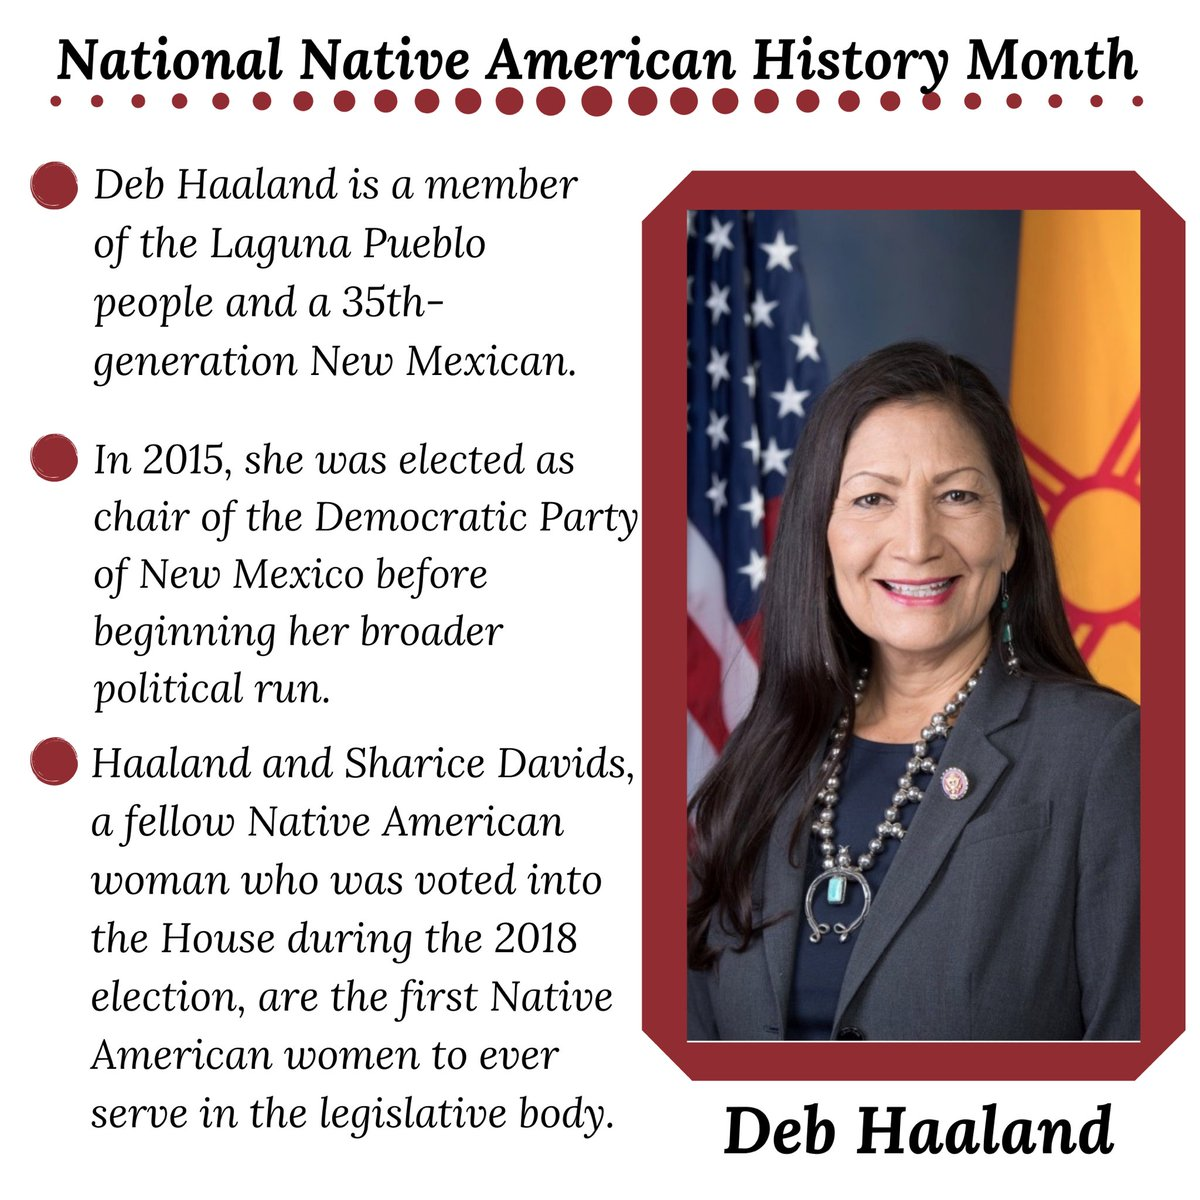 We're still celebrating Native American history!  #happyfriday #nativeamericanhistorymonth #indigenous #culture #thankful #positive #womenleaders